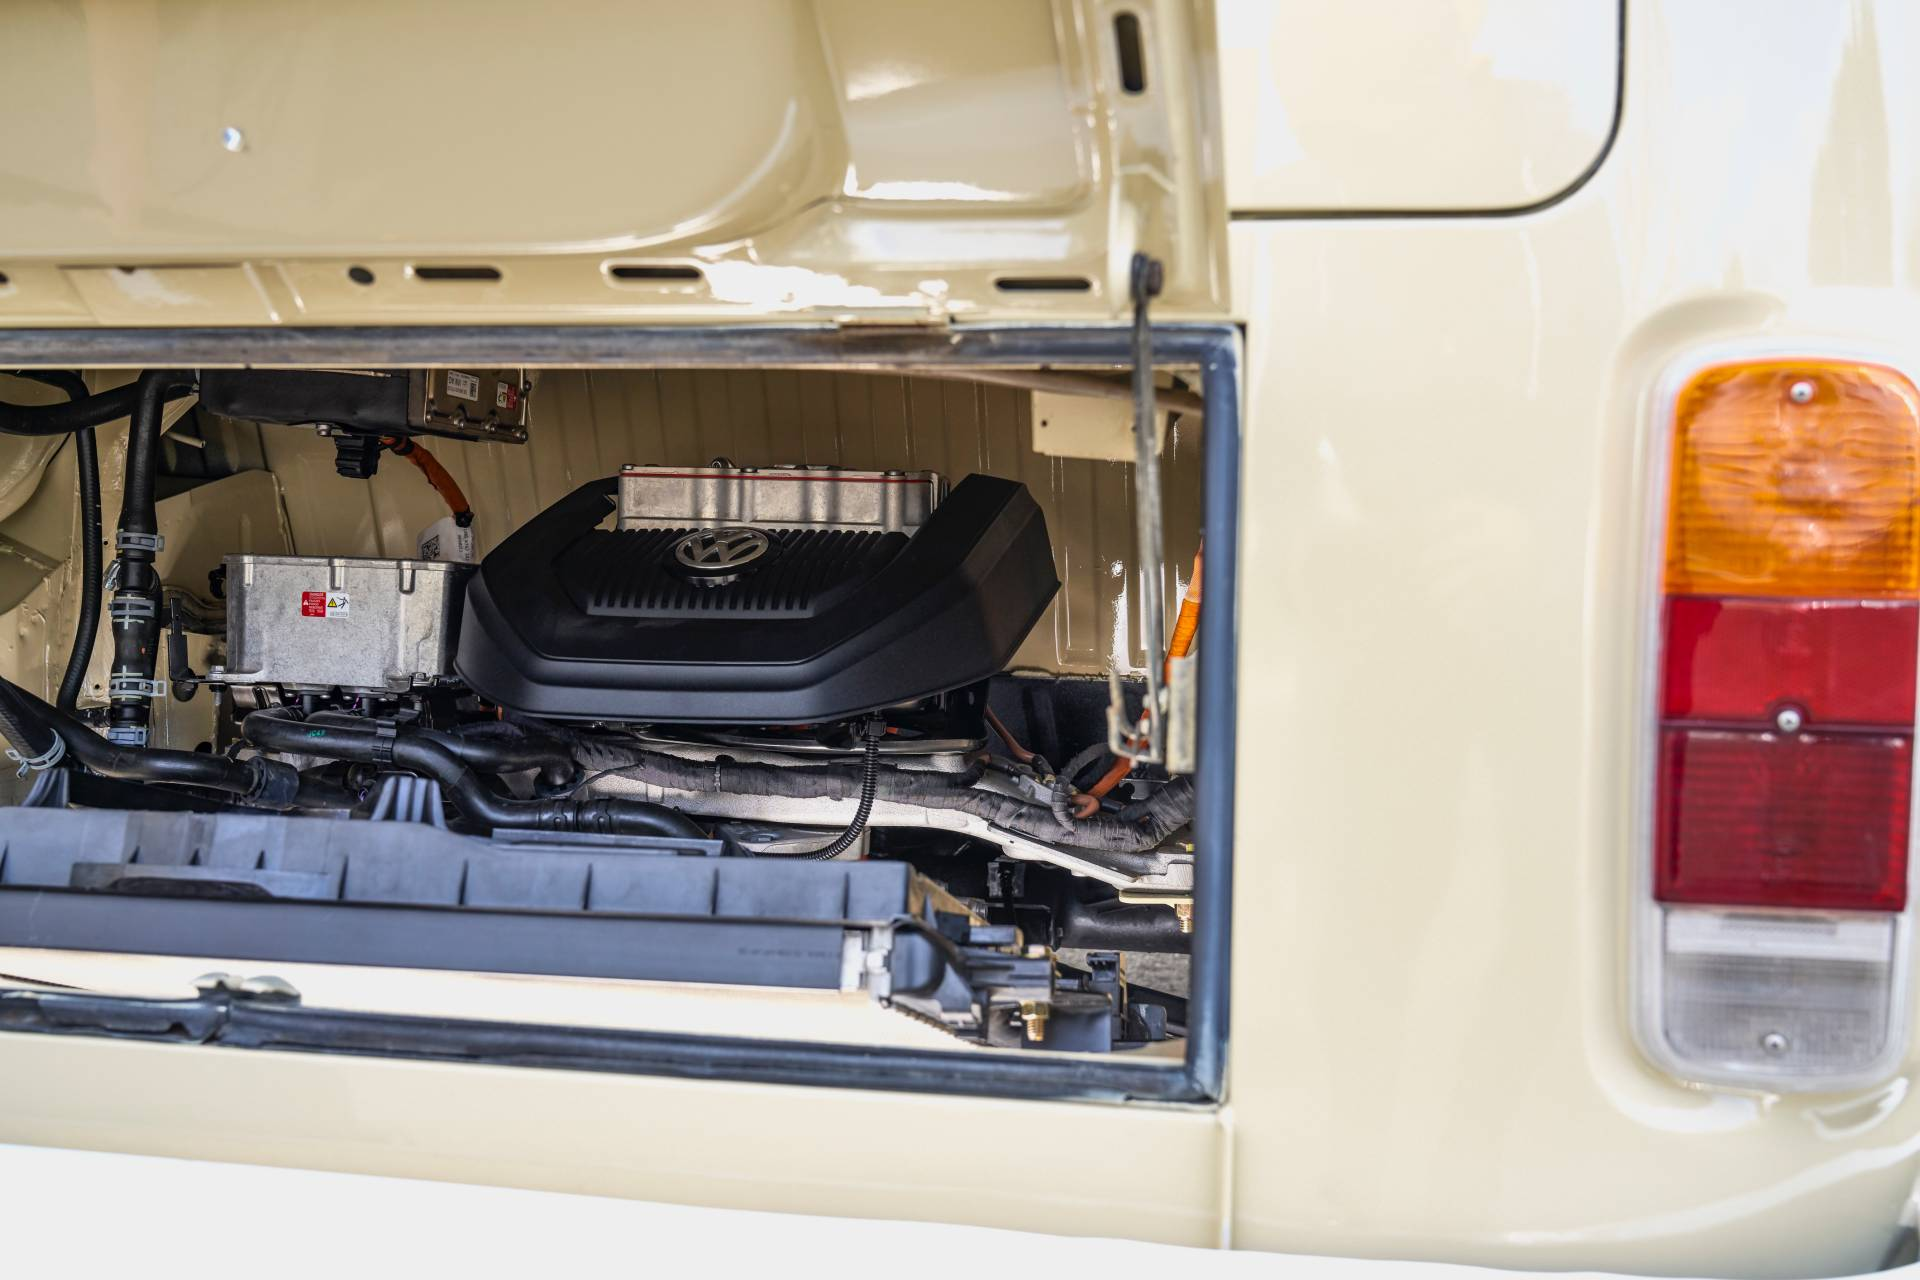 Volkswagen-Type-2-1972-with-e-Golf-engine-16